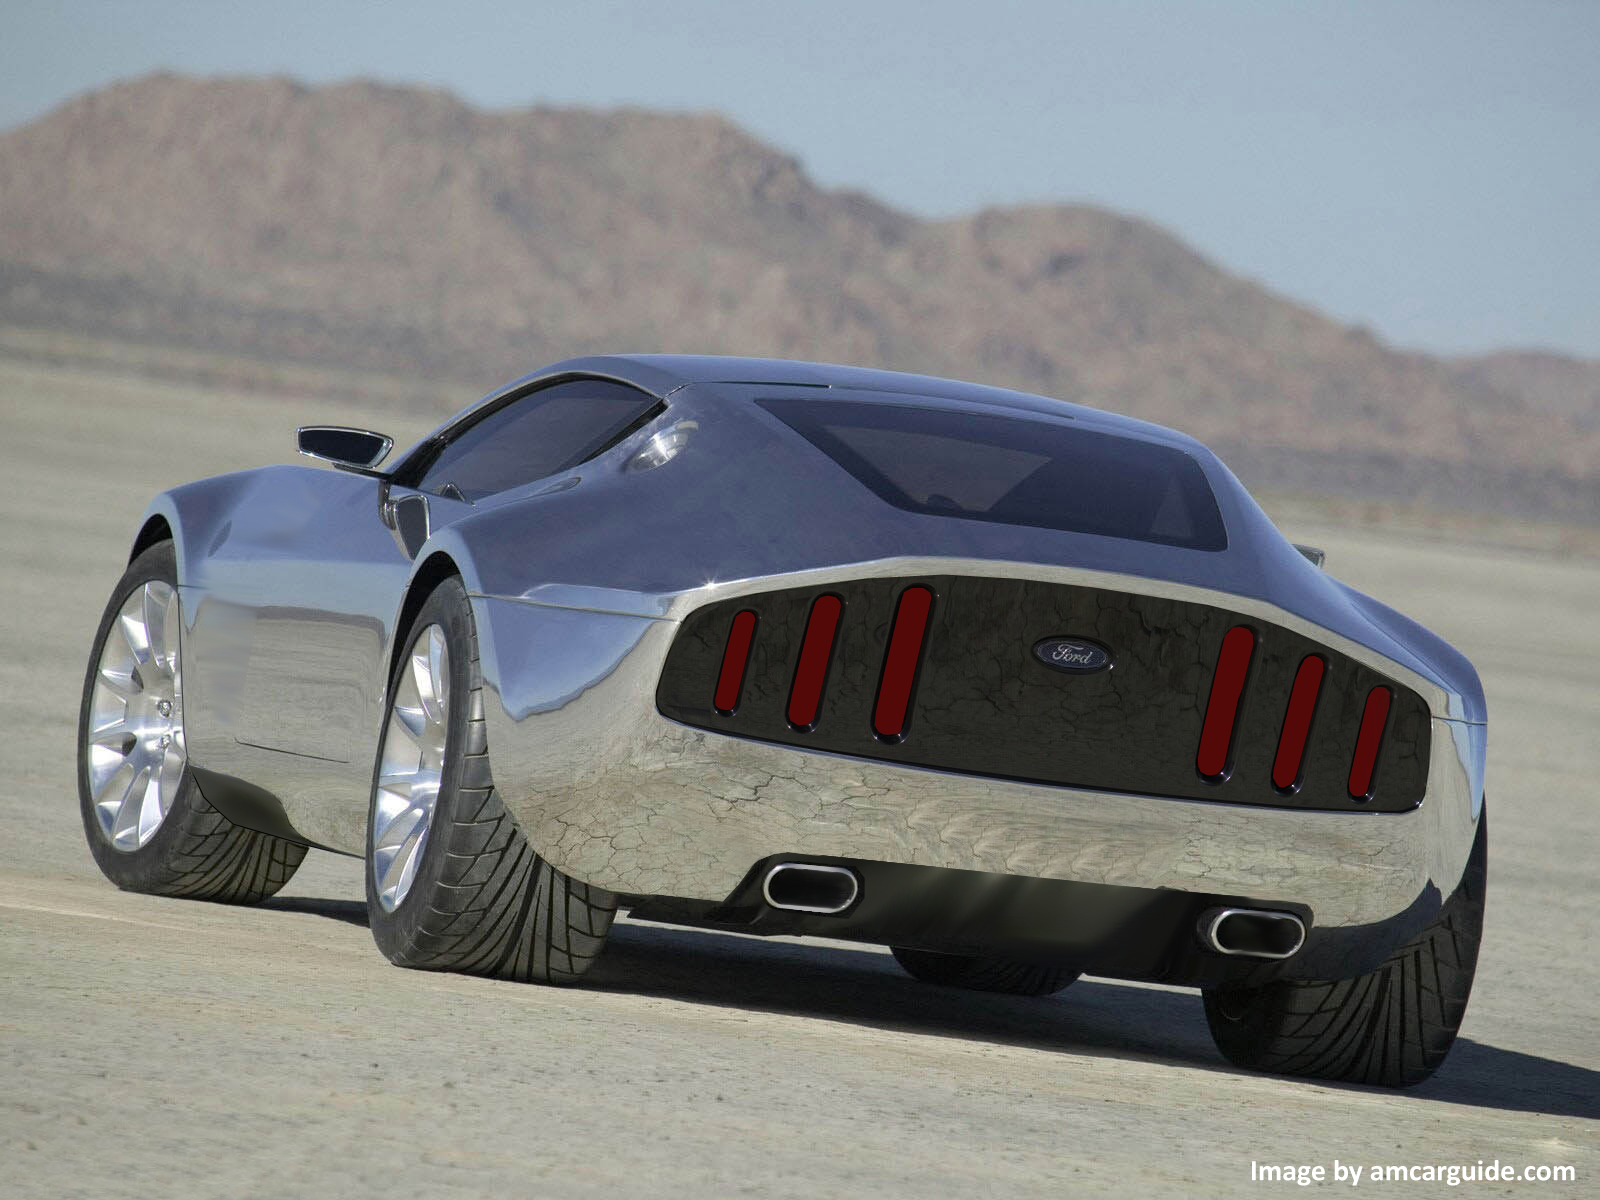 2015-mustang-concept-by-amcarguide-based-on-gr1-ford-concept